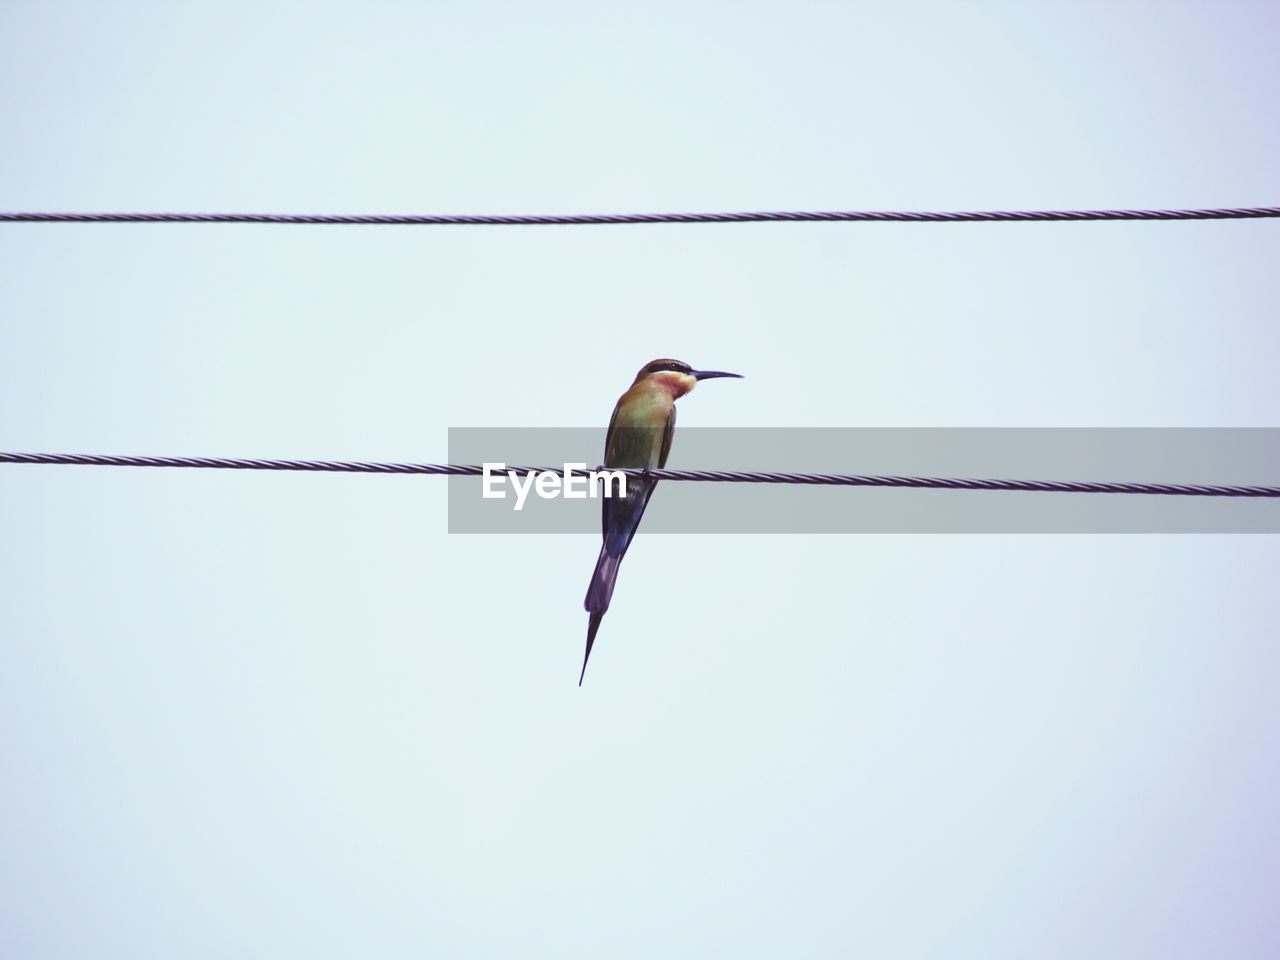 vertebrate, animal themes, one animal, animal, bird, animals in the wild, animal wildlife, sky, clear sky, no people, perching, day, low angle view, cable, copy space, nature, outdoors, full length, power line, kingfisher